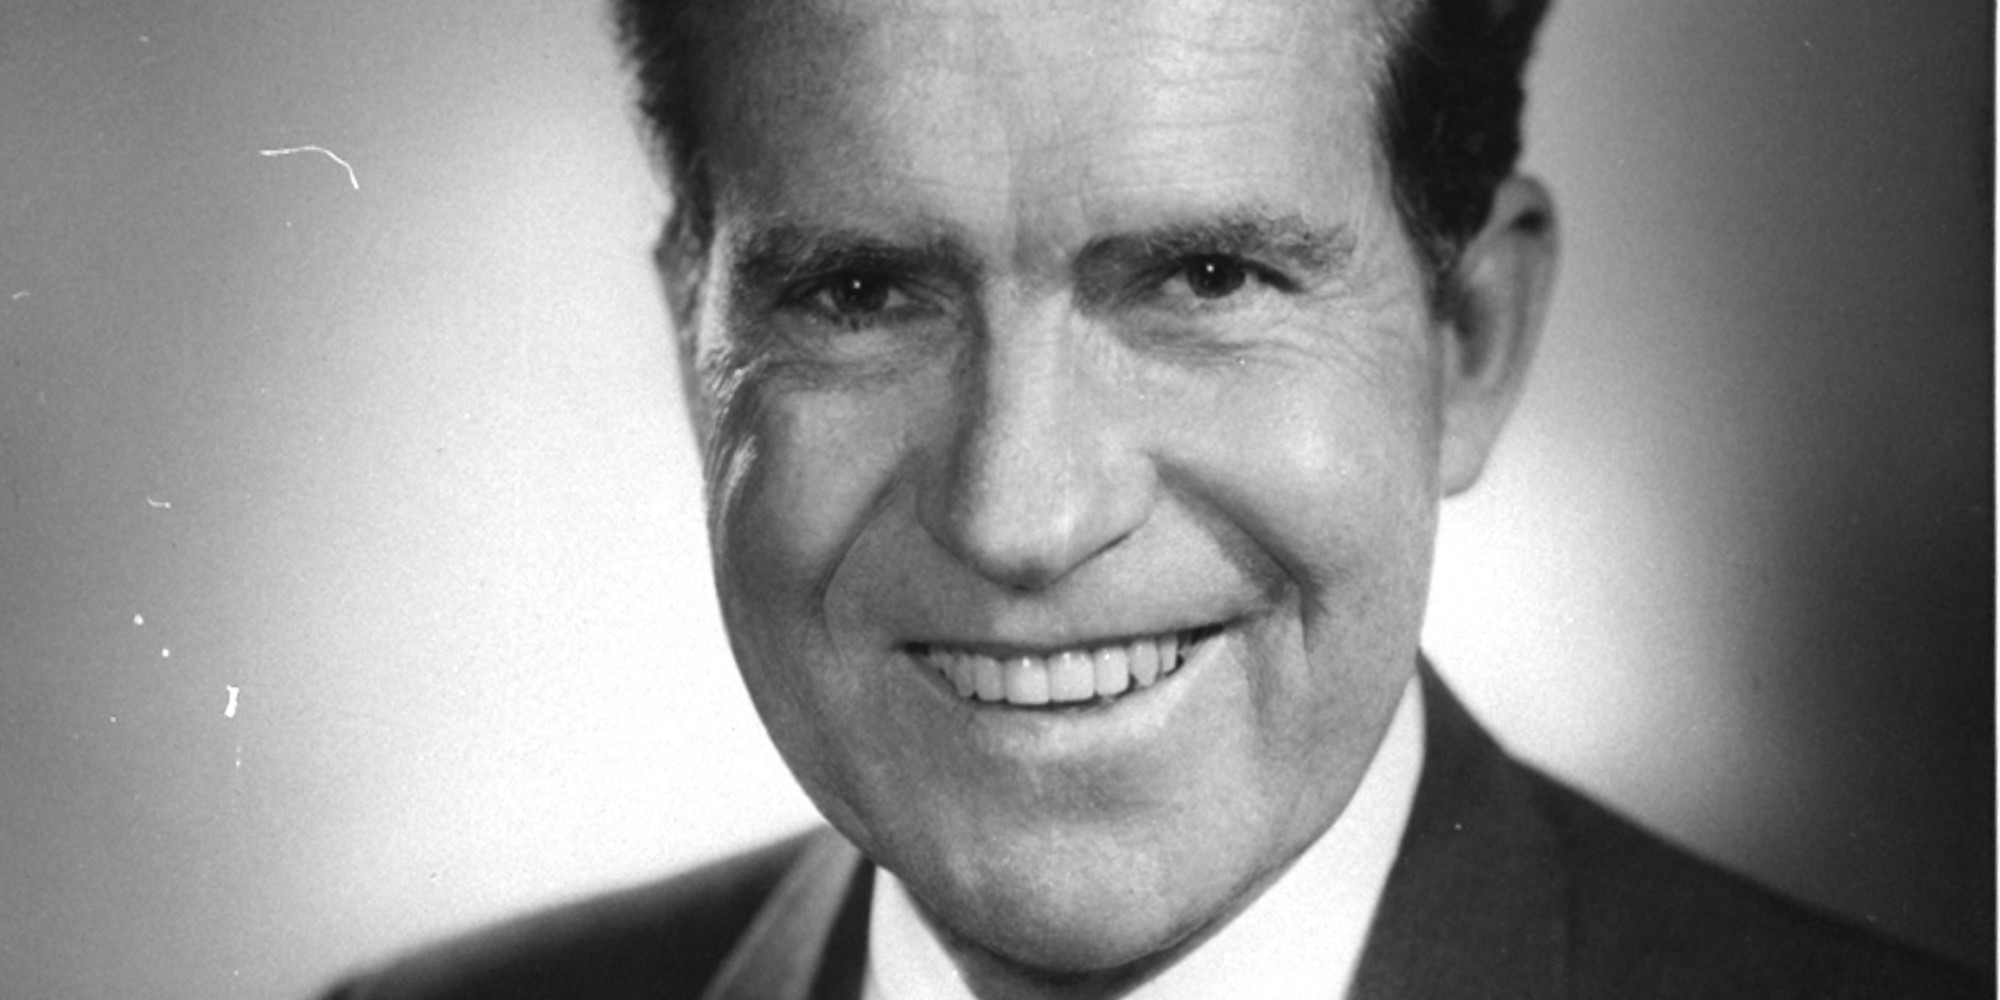 richard nixon Richard nixon (january 9, 1913 – april 22, 1994) was the 37th president of the united states, serving from 1969 to 1974, when he became the only president to resign the office.